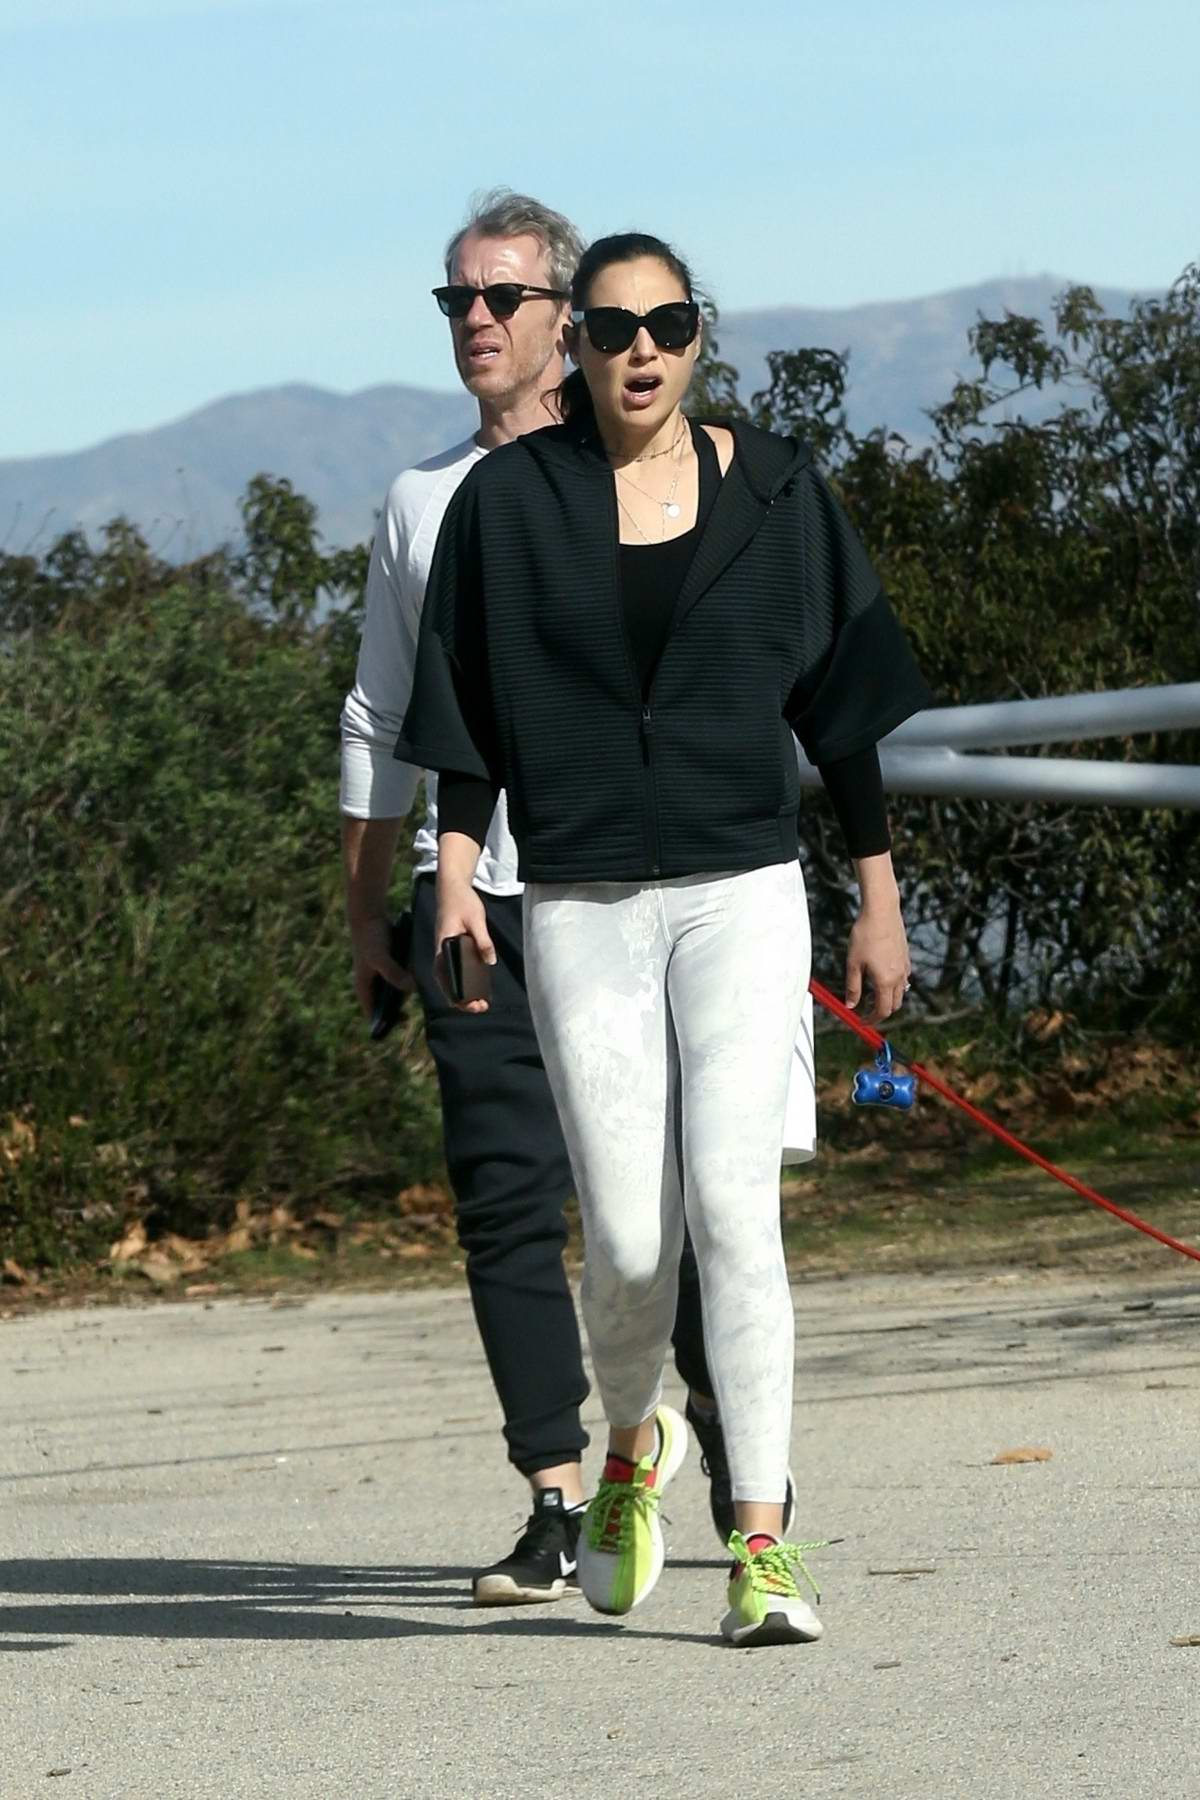 Gal Gadot and husband Yaron Varsano enjoy a hike with their dog in Los Angeles